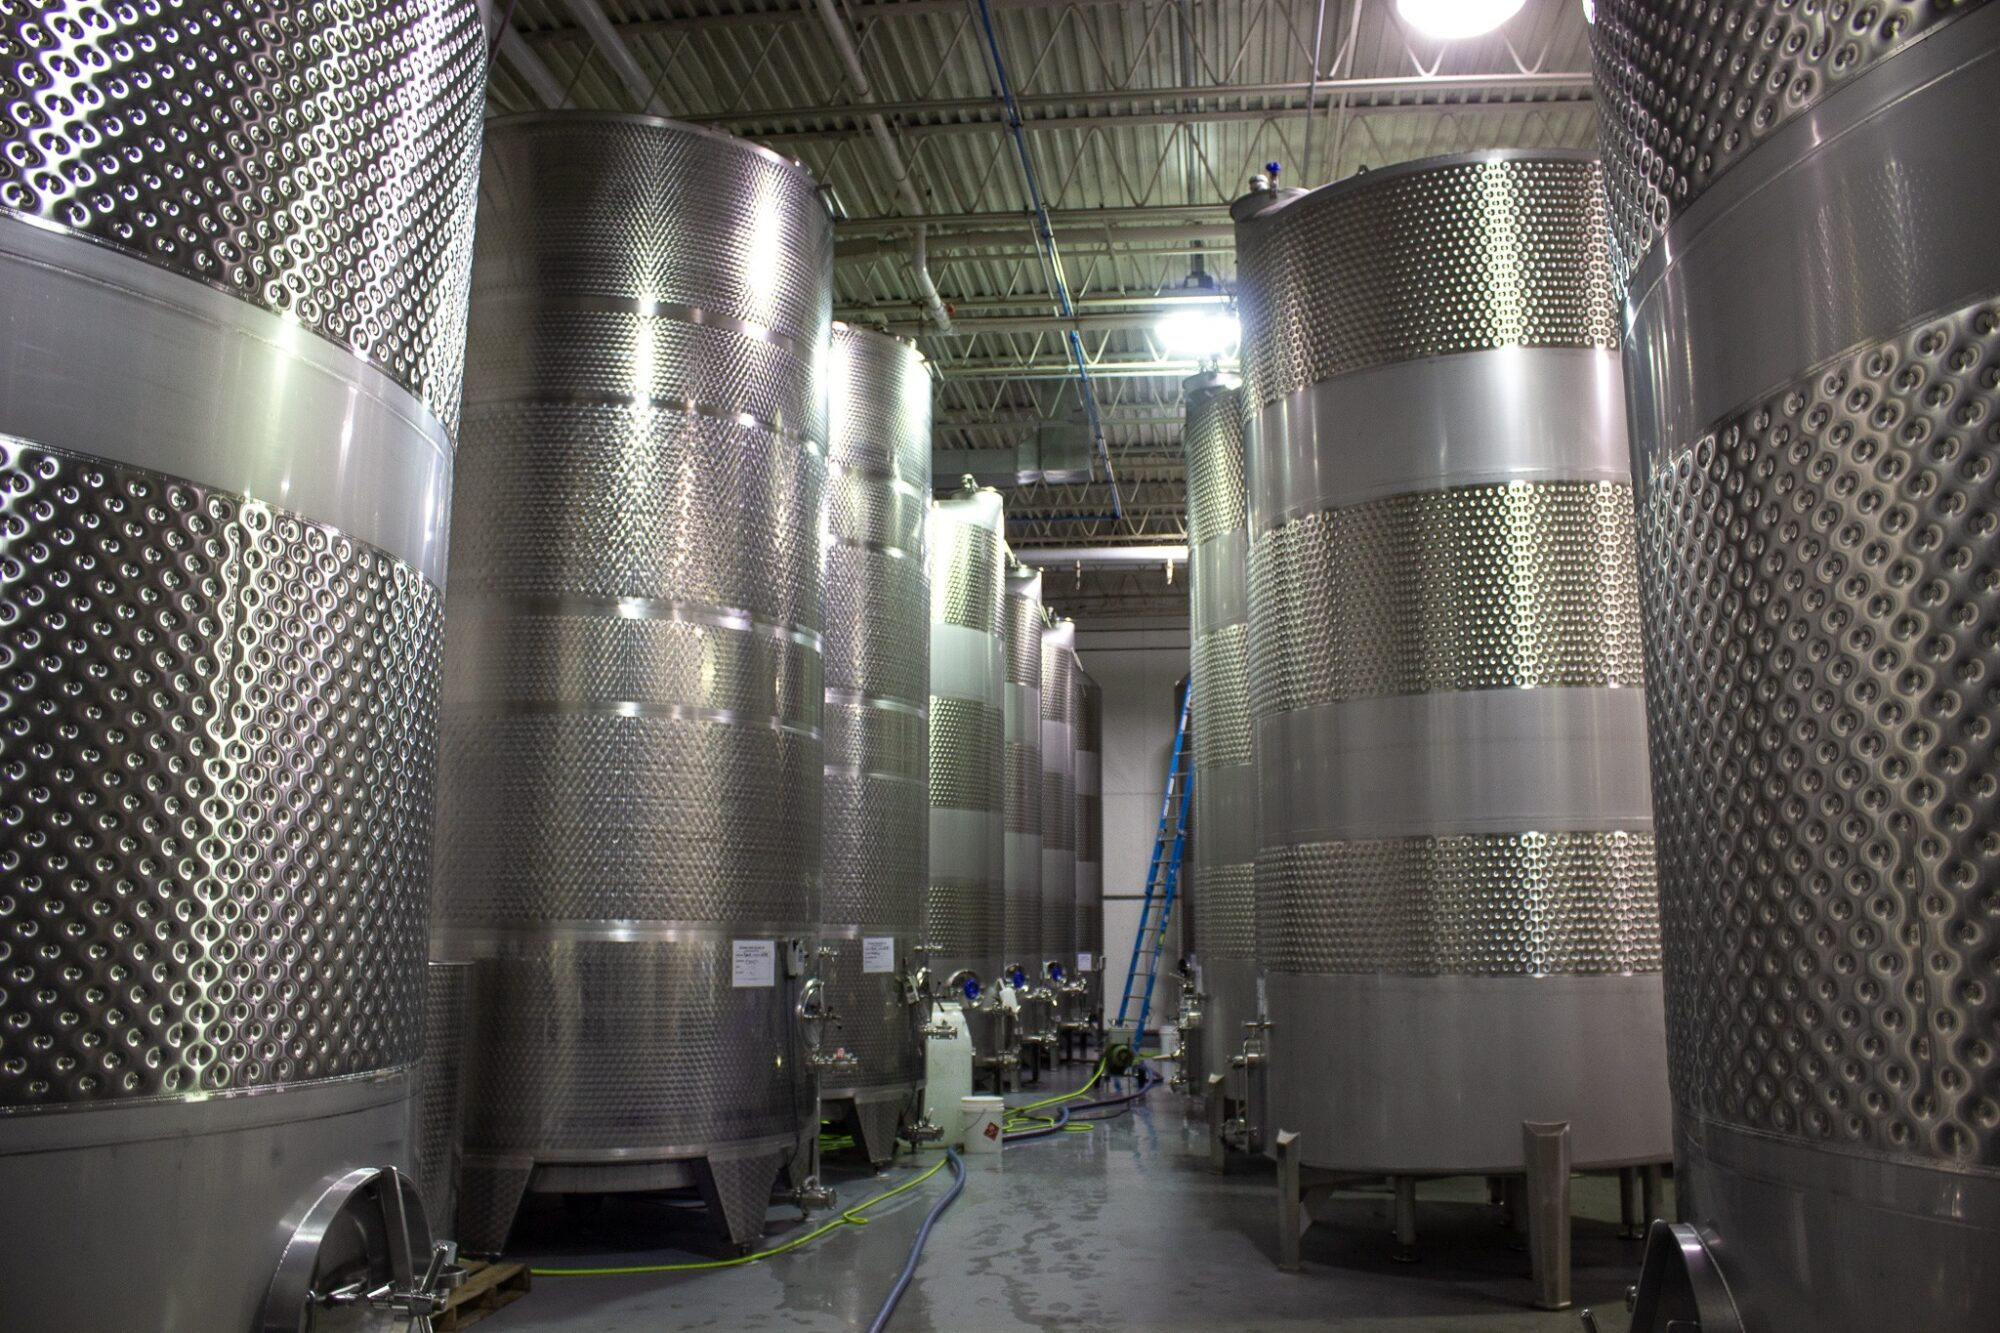 Production Line with 60,000 gallon fermentation tanks